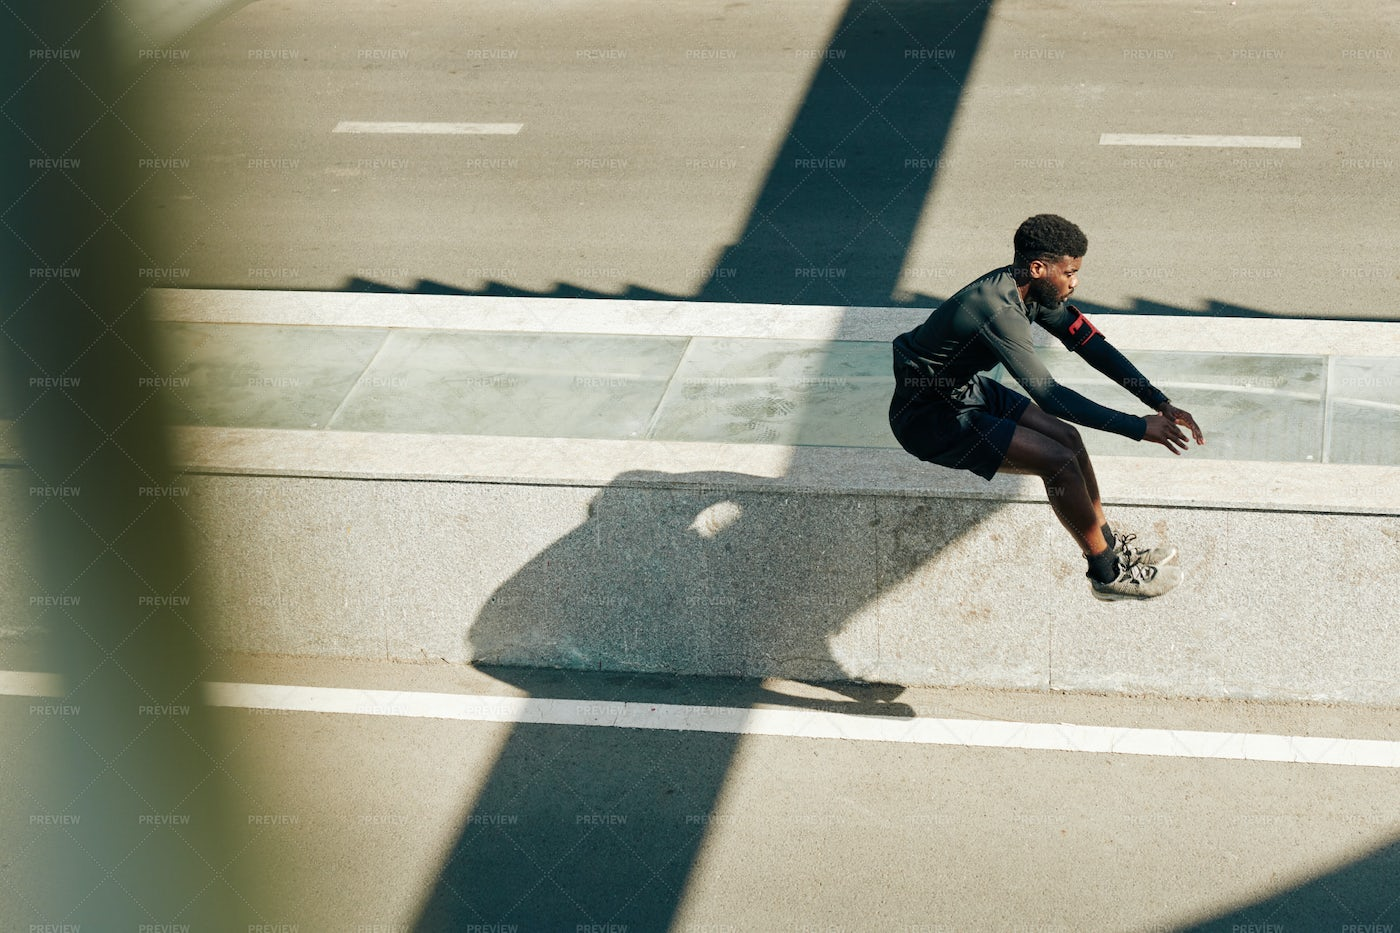 Athlete Doing Jumping Exercise: Stock Photos